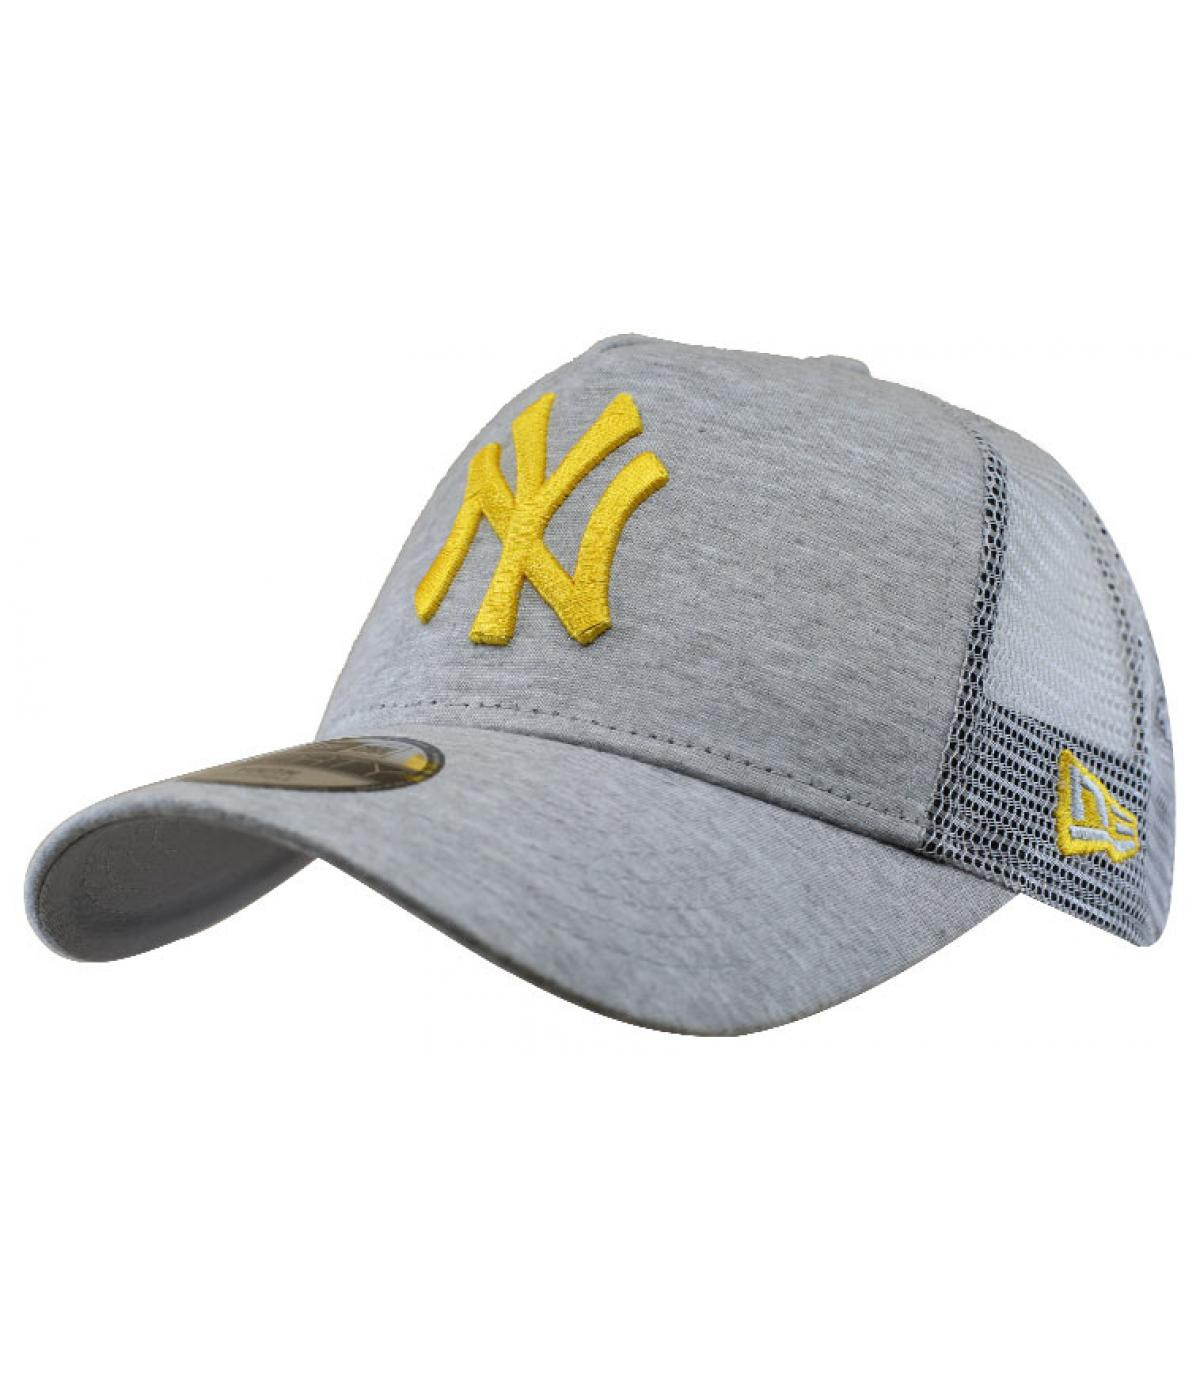 Détails Trucker Kids Jersey Ess NY grey mellow yellow - image 2